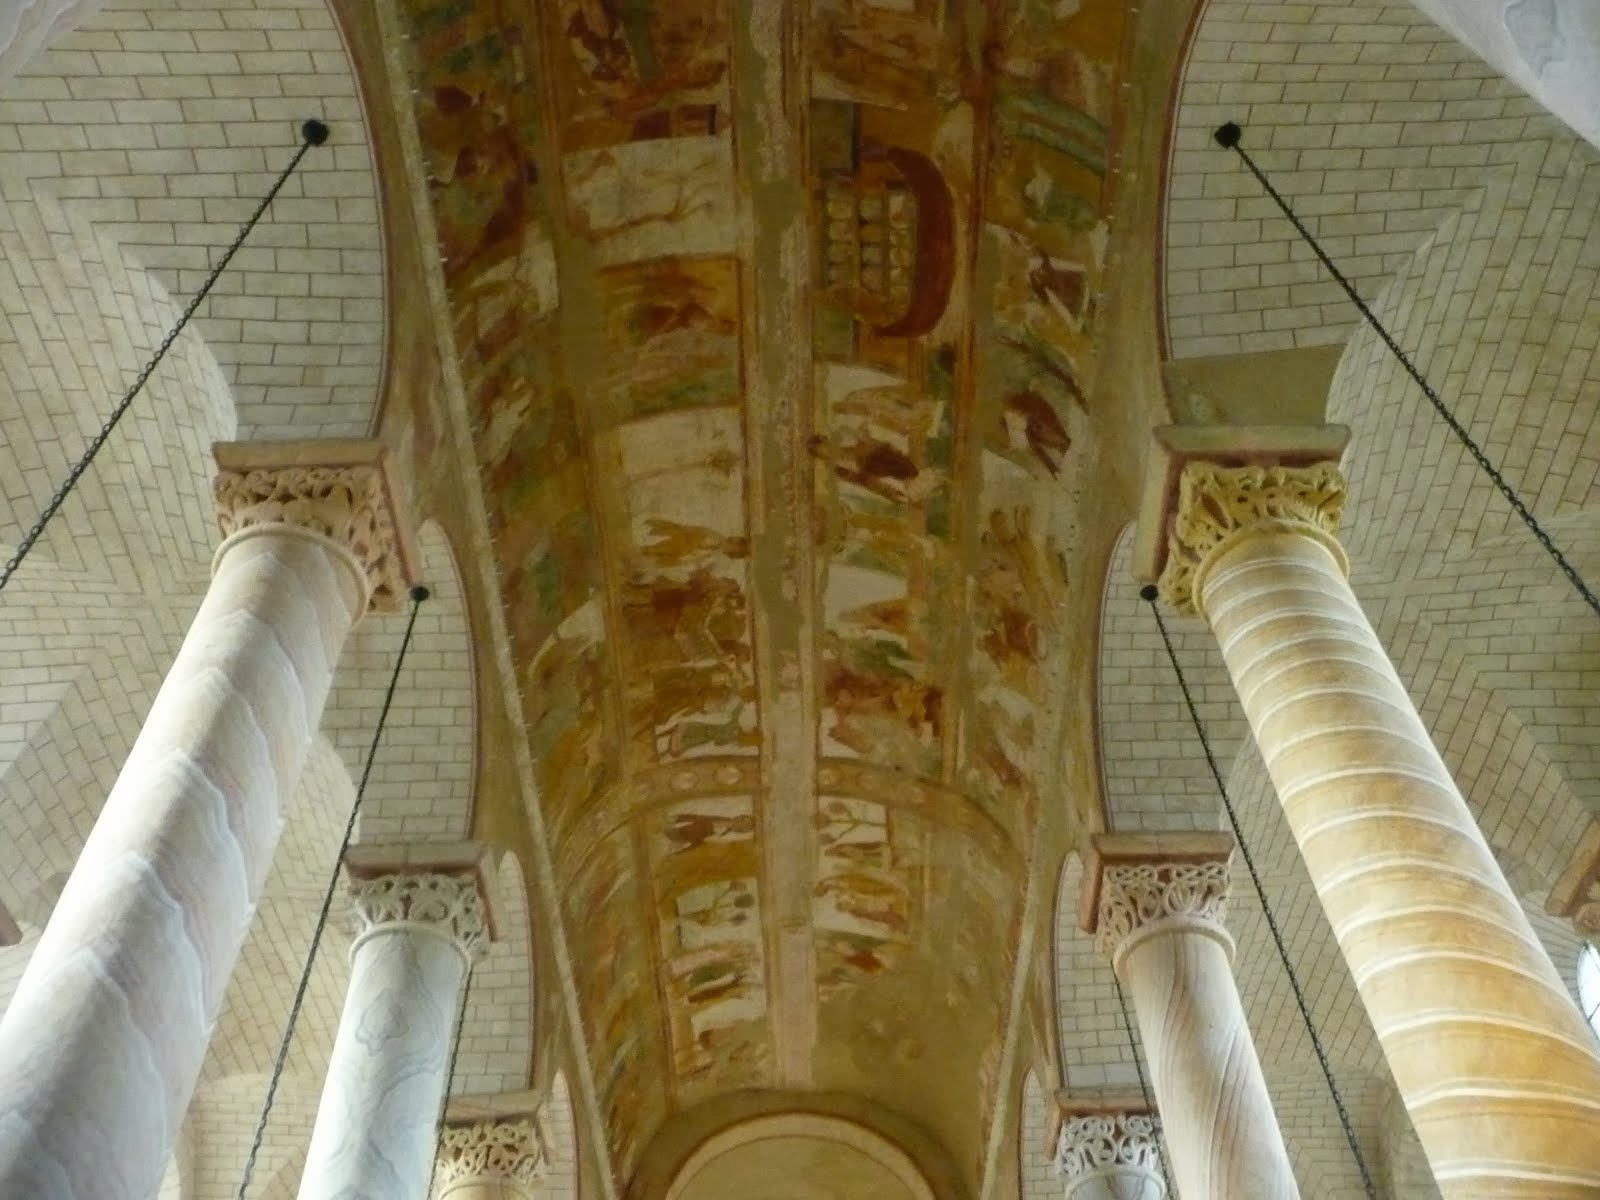 Ceiling of the Abby Church, Saint-Savin-sur-Gartempe